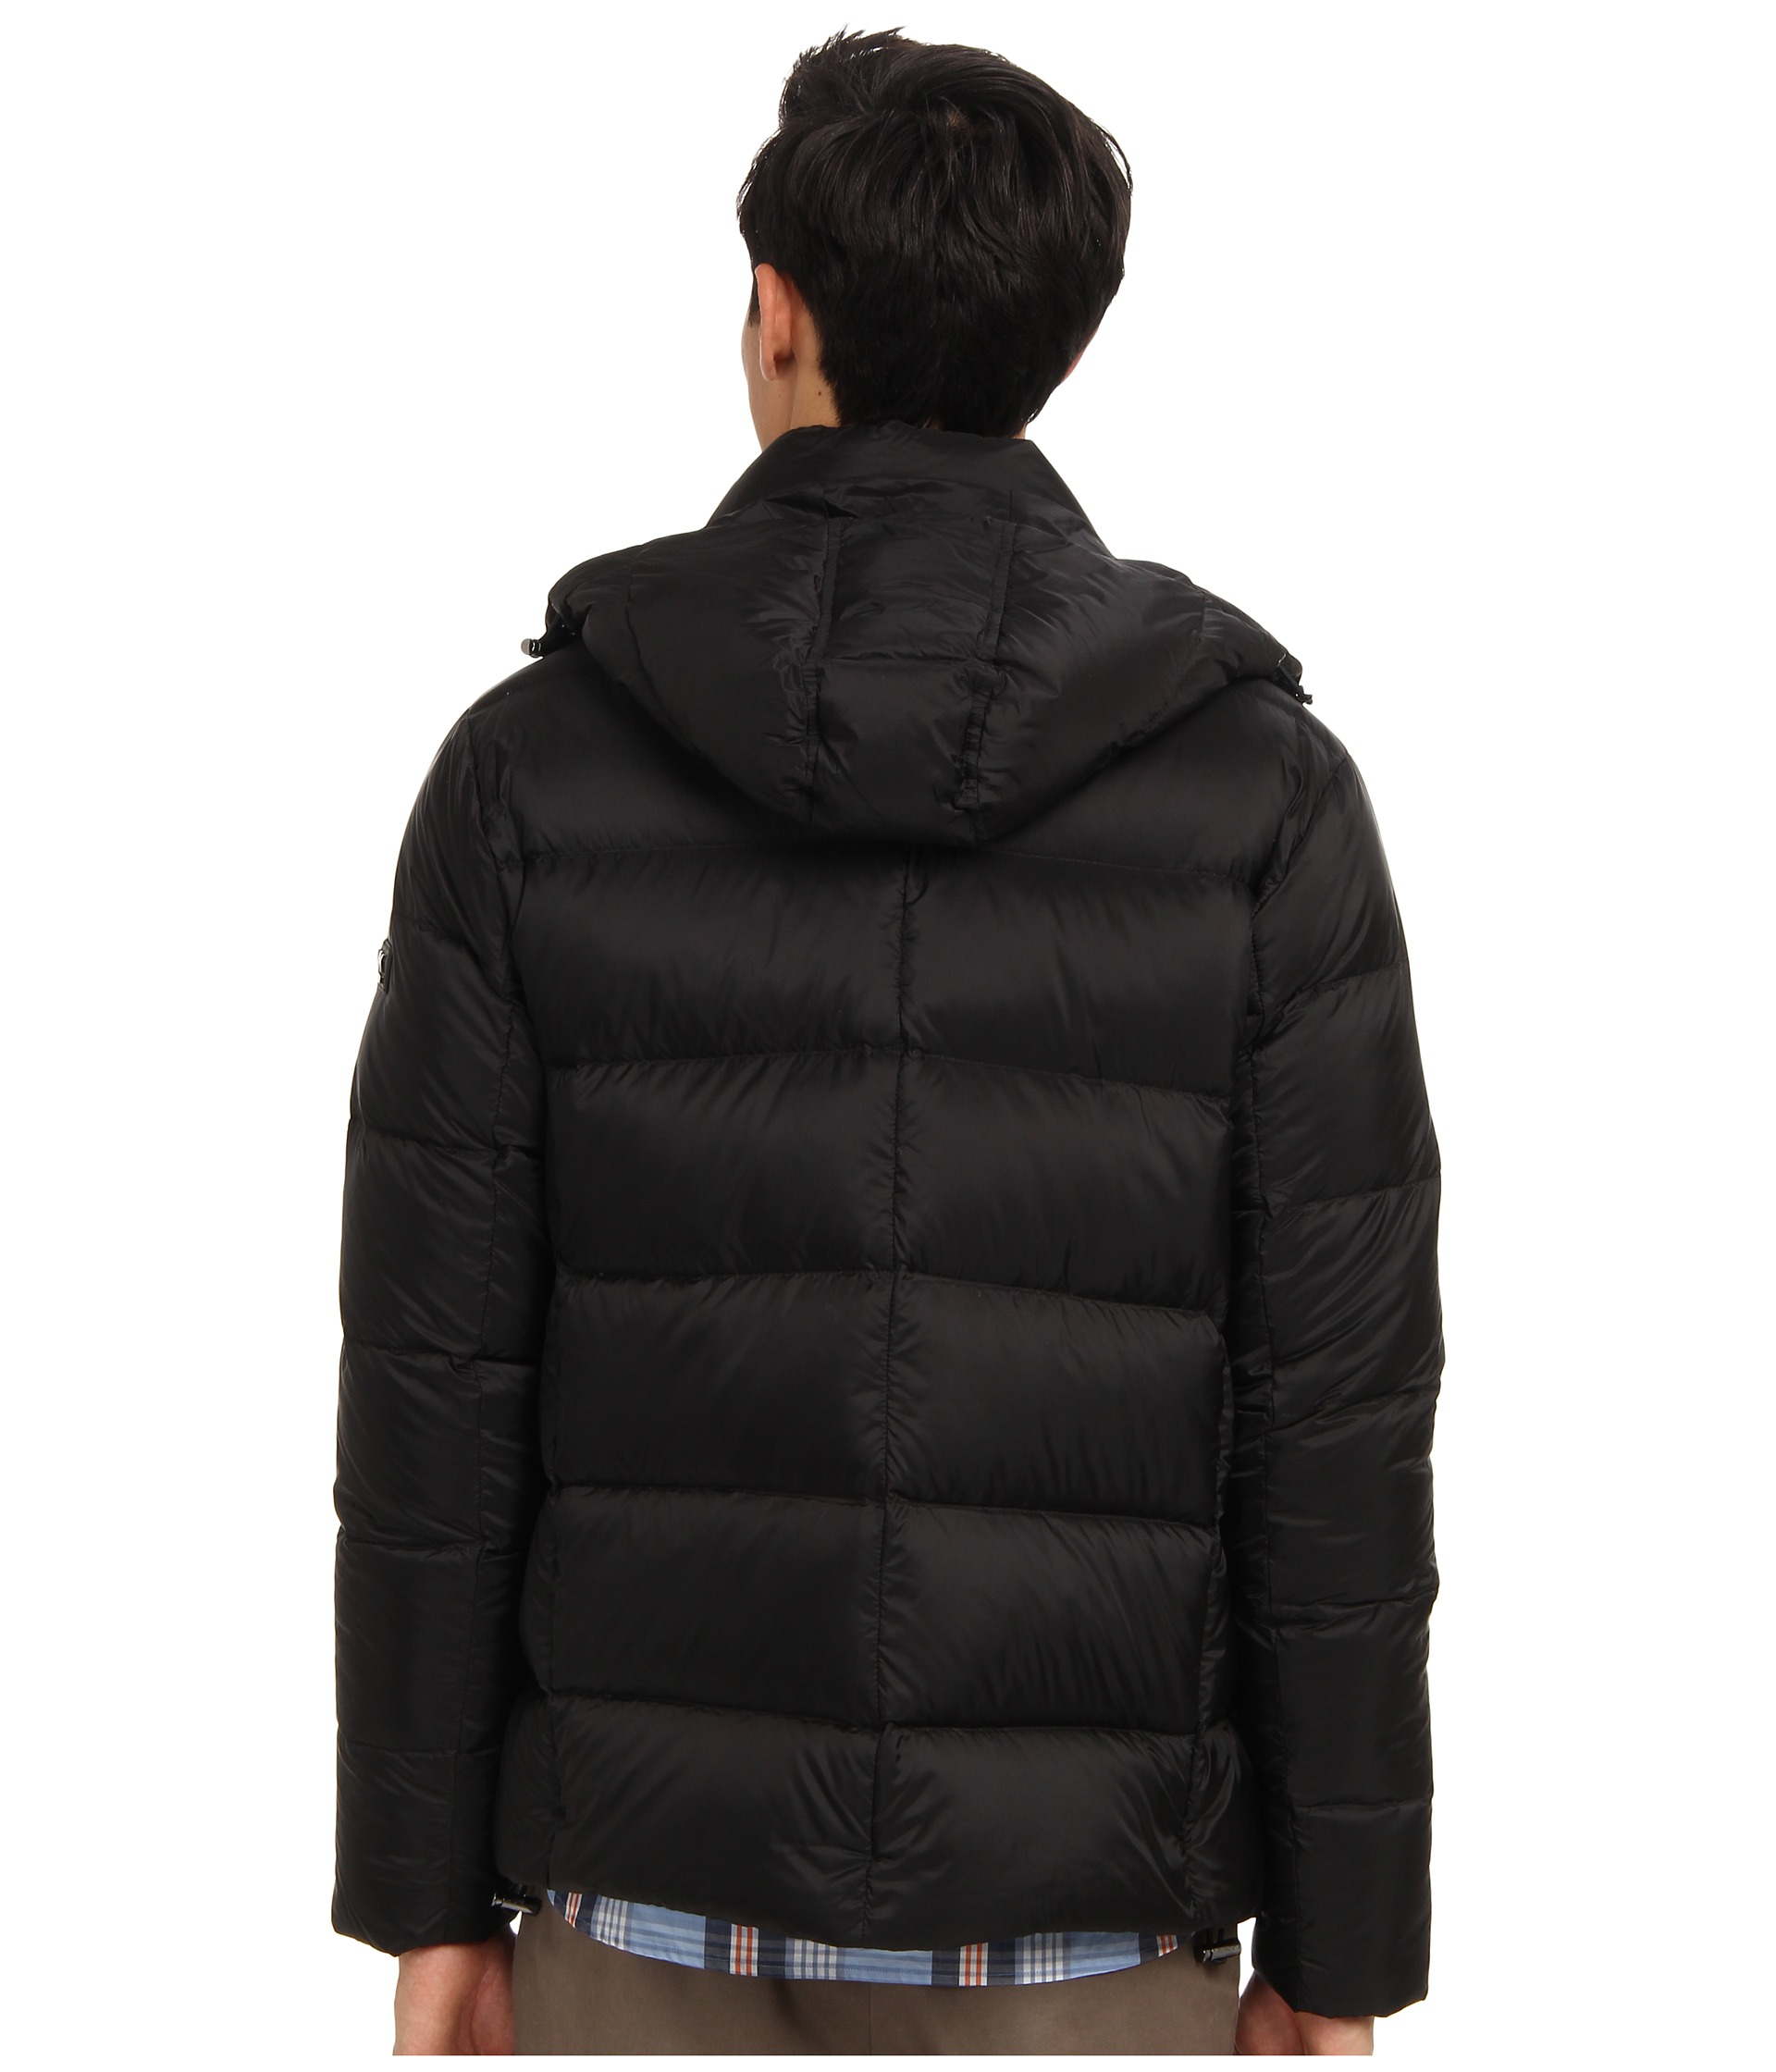 michael kors collection hooded down jacket shipped free at zappos. Black Bedroom Furniture Sets. Home Design Ideas